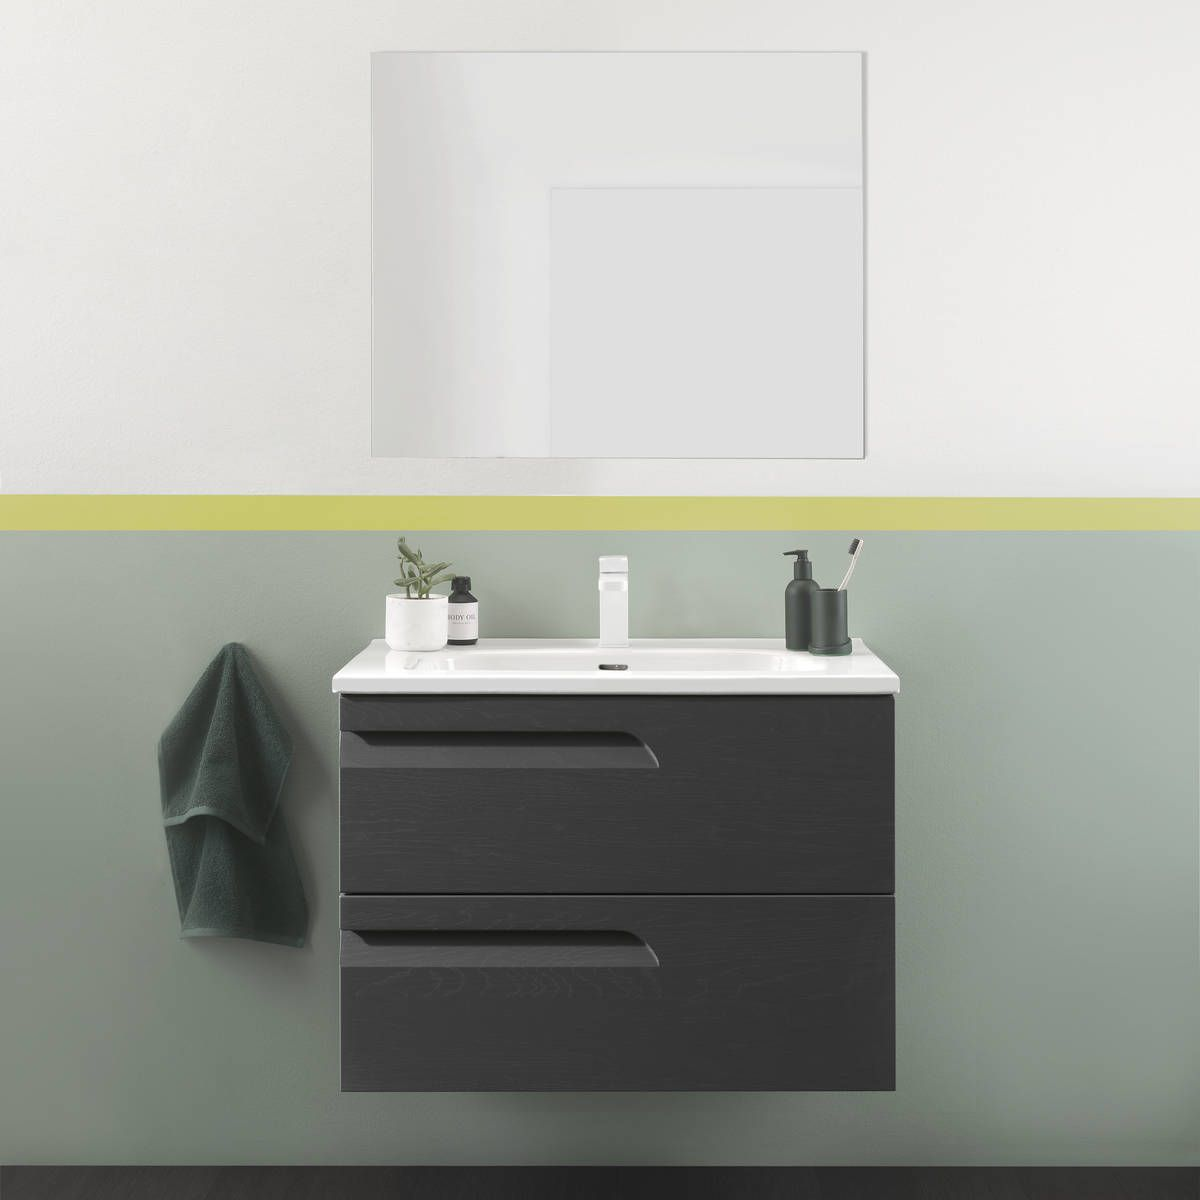 2 Drawer Wall Hung Vanity Unit Basin